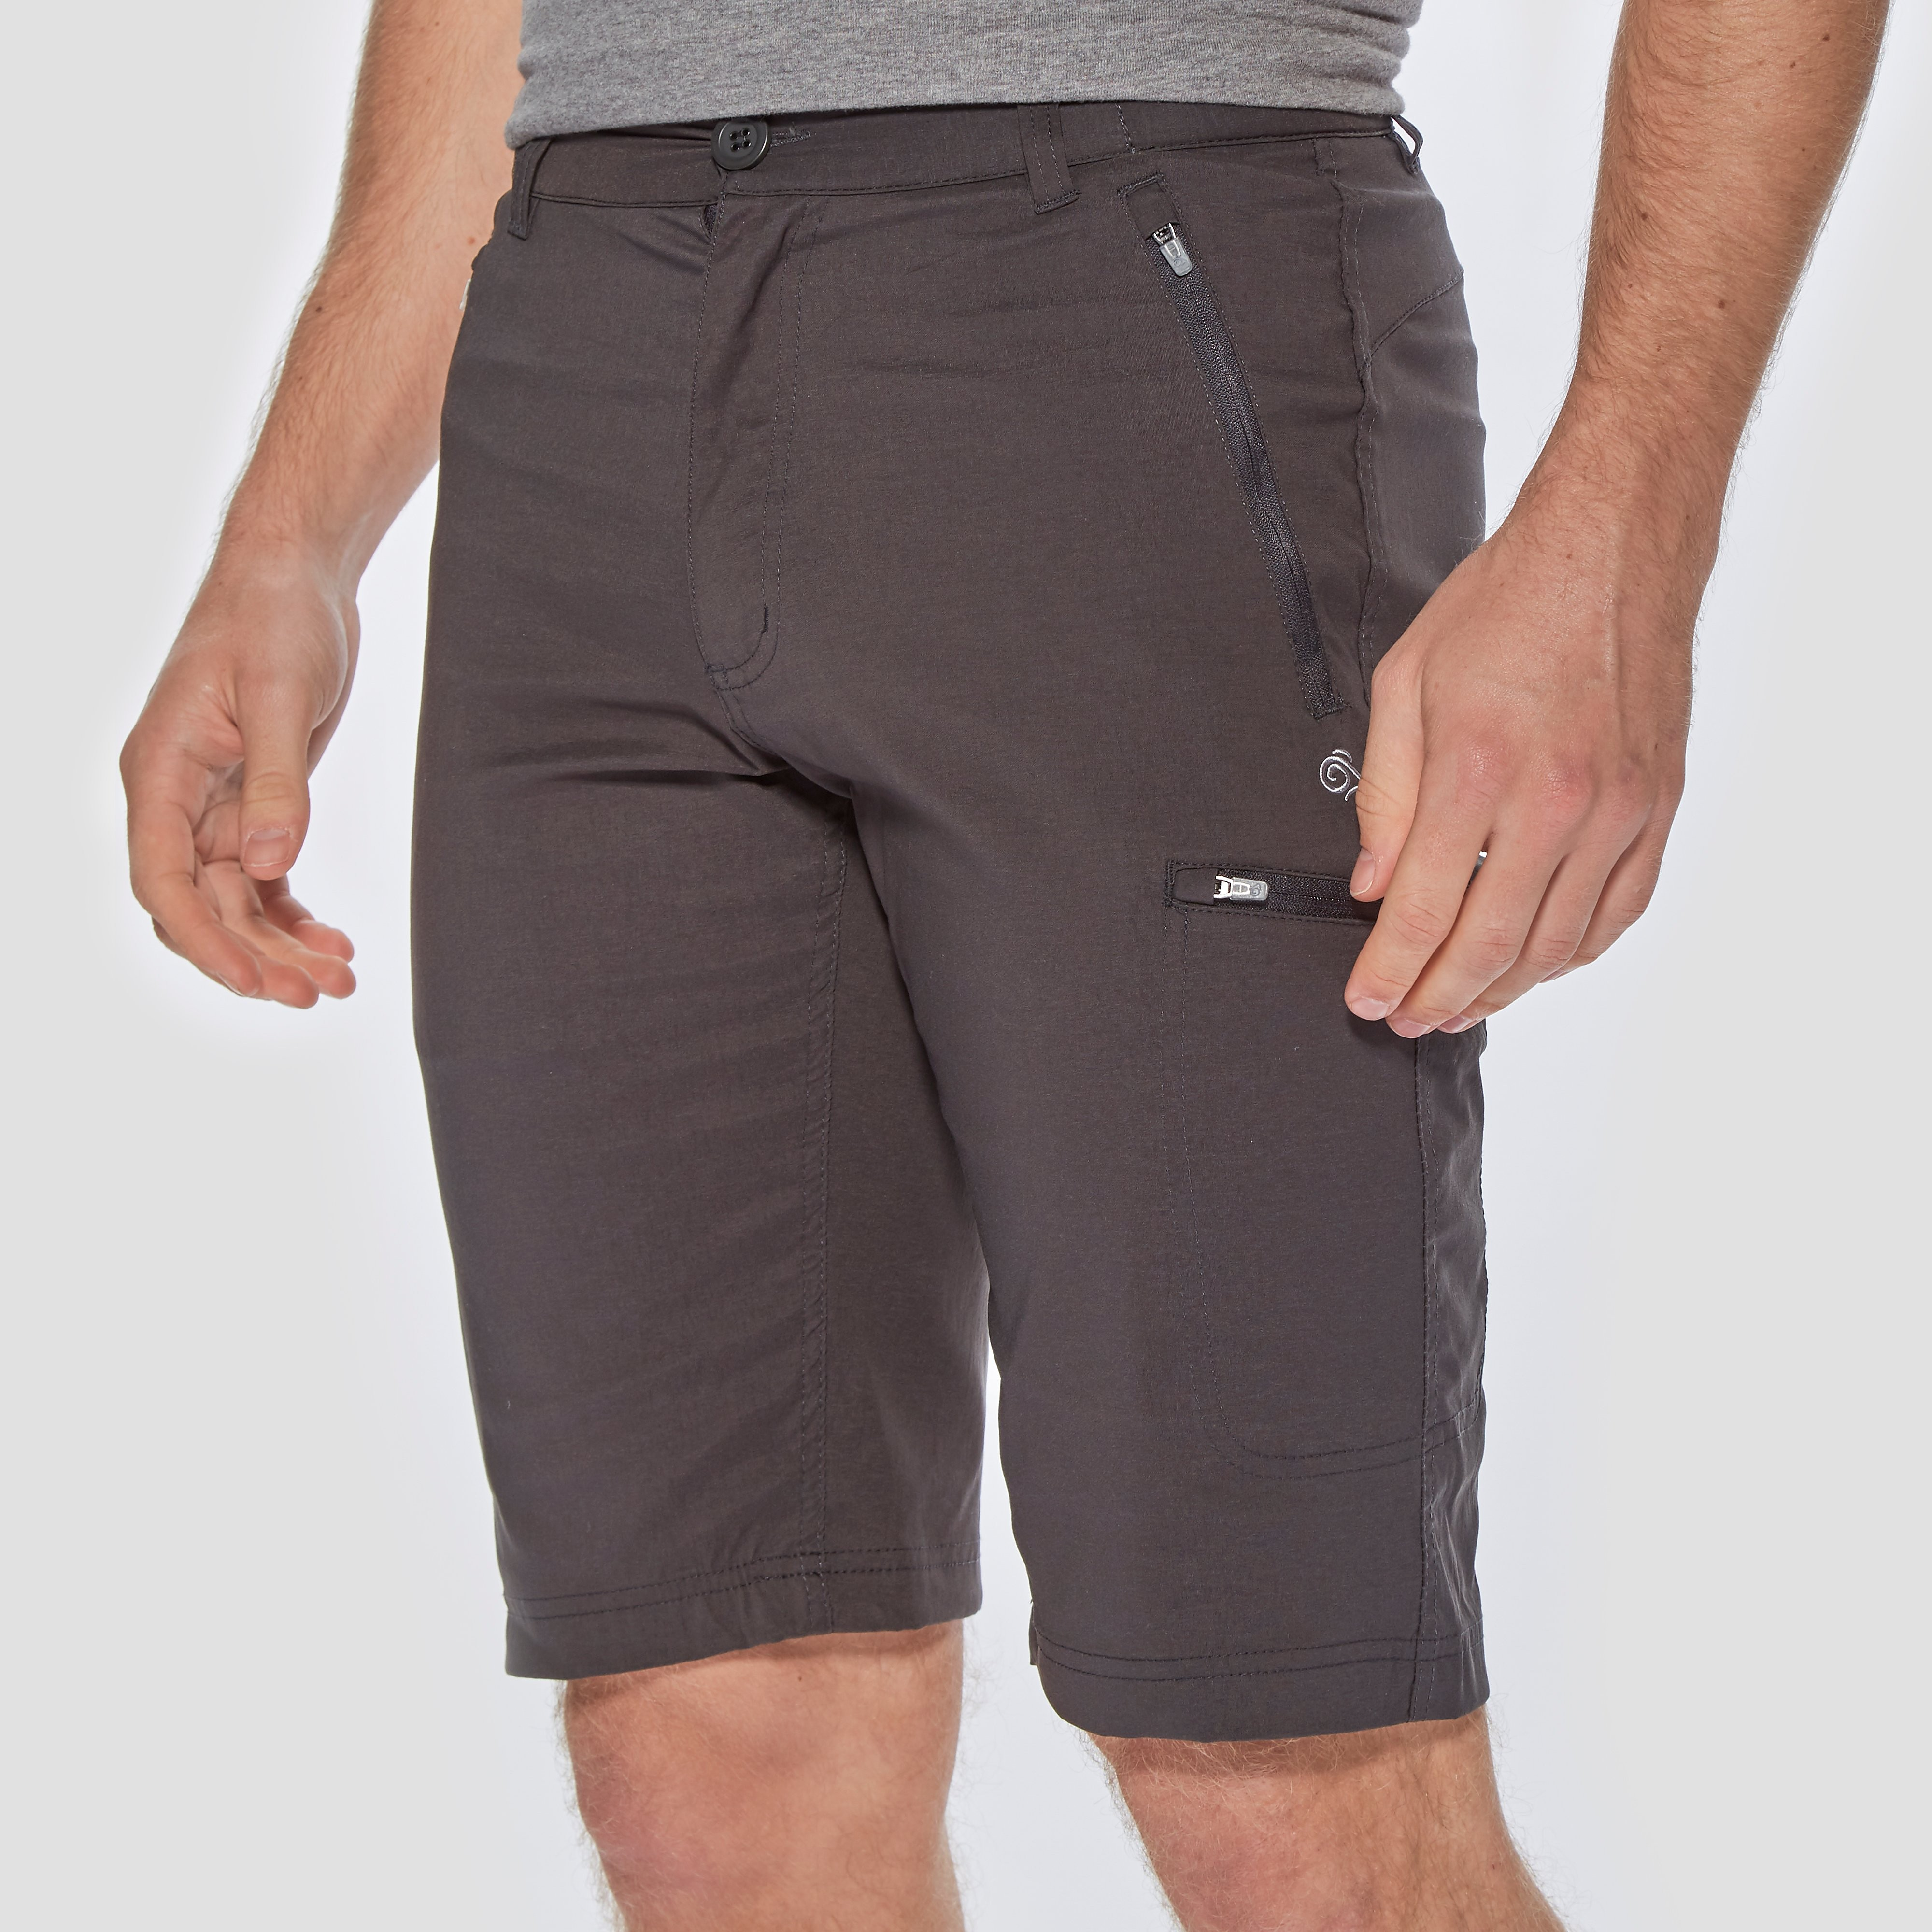 Craghoppers Kiwi Pro Long Men's Shorts